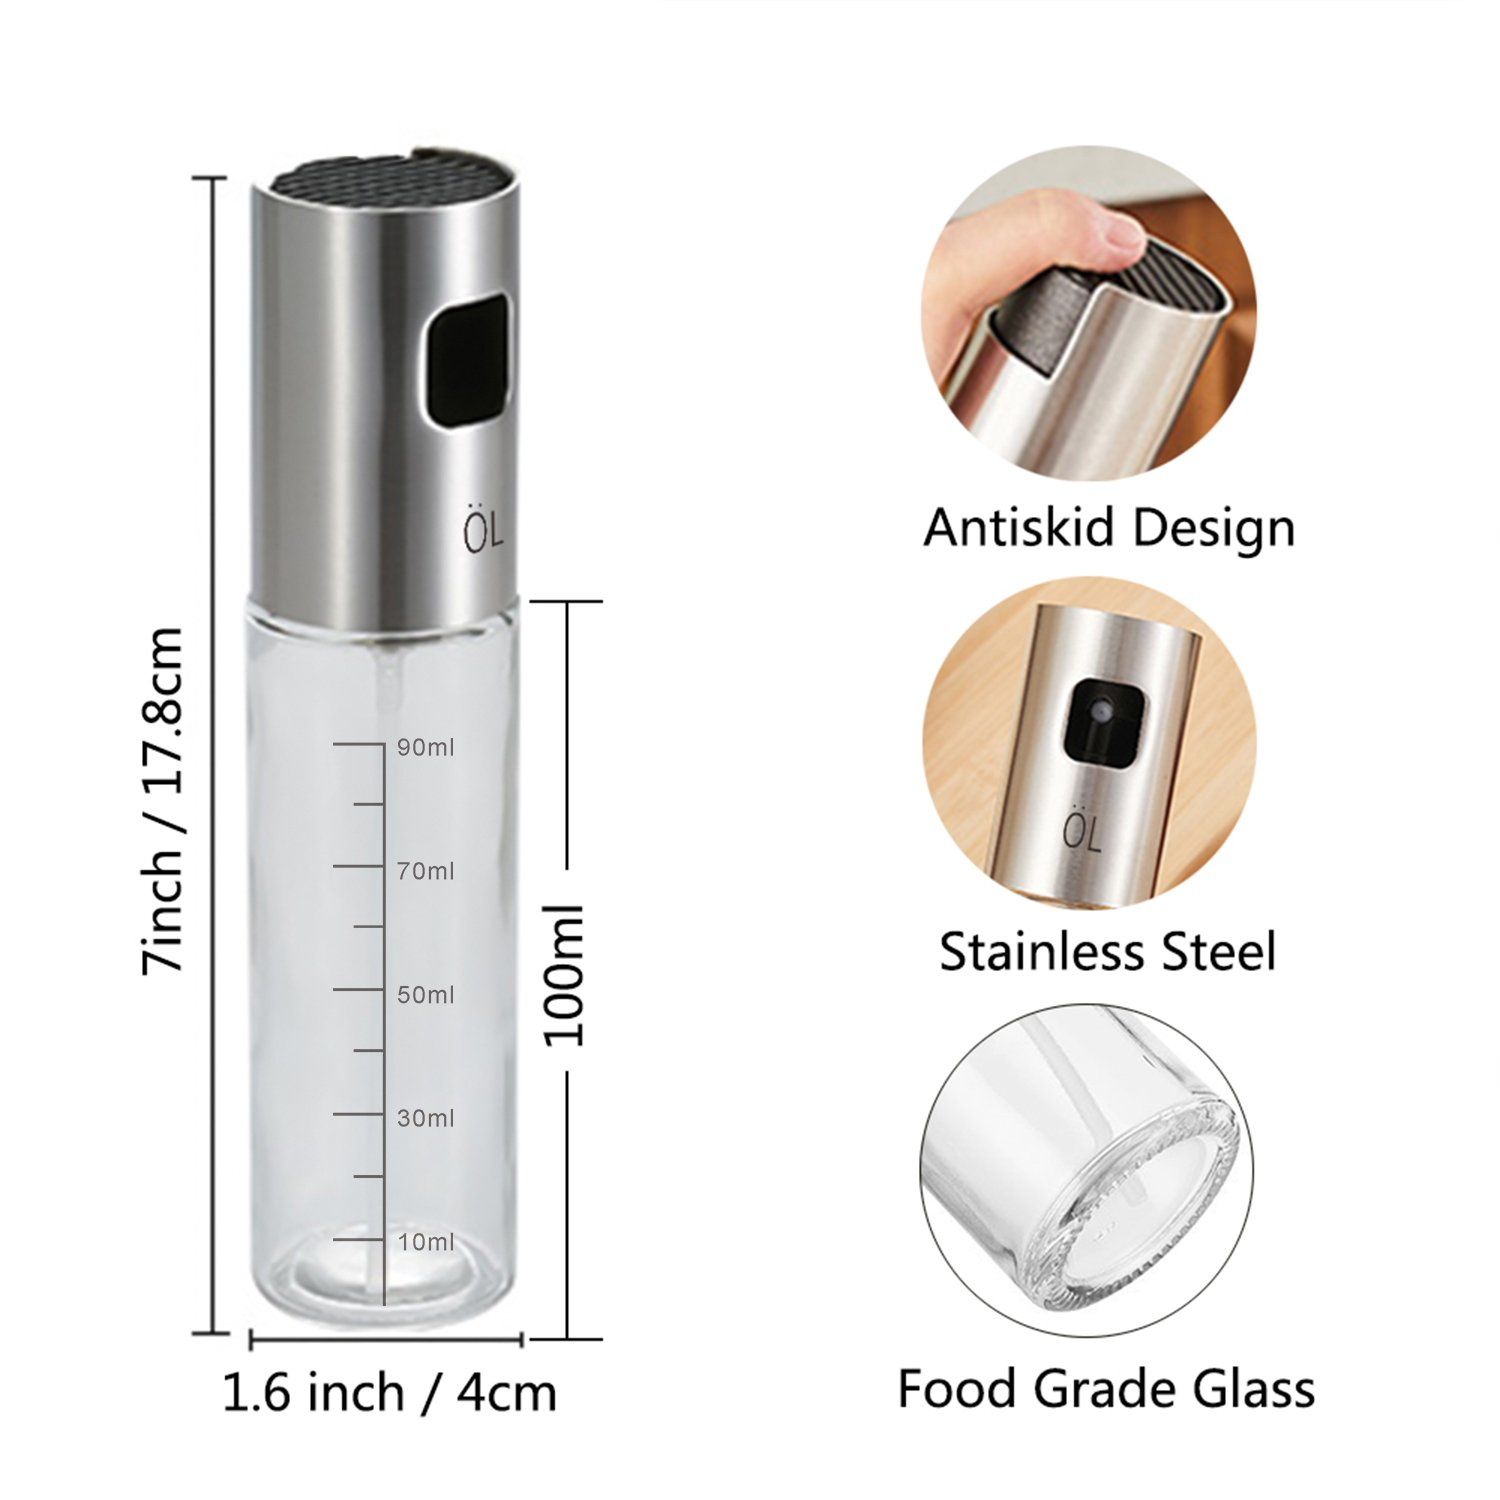 Roasting Baking Making Salad Oil Vinegar Dispenser Bottle with Food-grade Glass with scale for BBQ Olive Oil Bottle Grill Cooking Topixdeals Stainless Steel Refillable Oil Bottle for Cooking